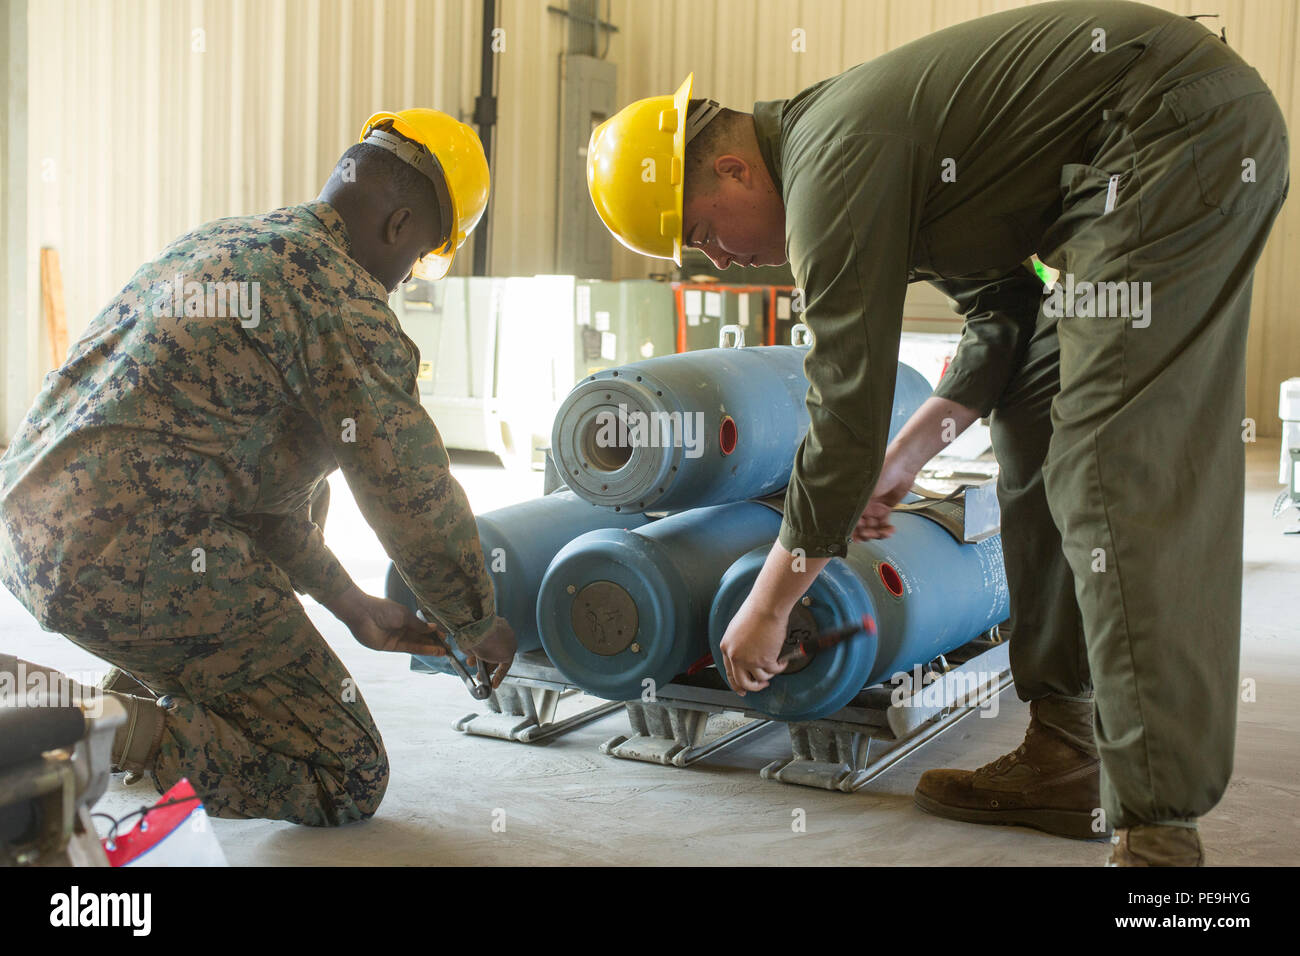 U.S. Marine Corps Lance Cpl. William H. Shaw, left, and Lance Cpl. Michaelalan Mills, aviation ordnance systems technicians assigned to Marine Aviation Logistics Squadron (MALS) 14, assemble bomb dummy units on Marine Corps Air Station Cherry Point, N.C., Nov. 18, 2015. MALS-14 provides support to aviation units in 2nd Marine Aircraft Wing by preparing munitions and repairing weapon systems. (U.S. Marine Corps photo by Lance Cpl. Jered T. Stone/Released) - Stock Image